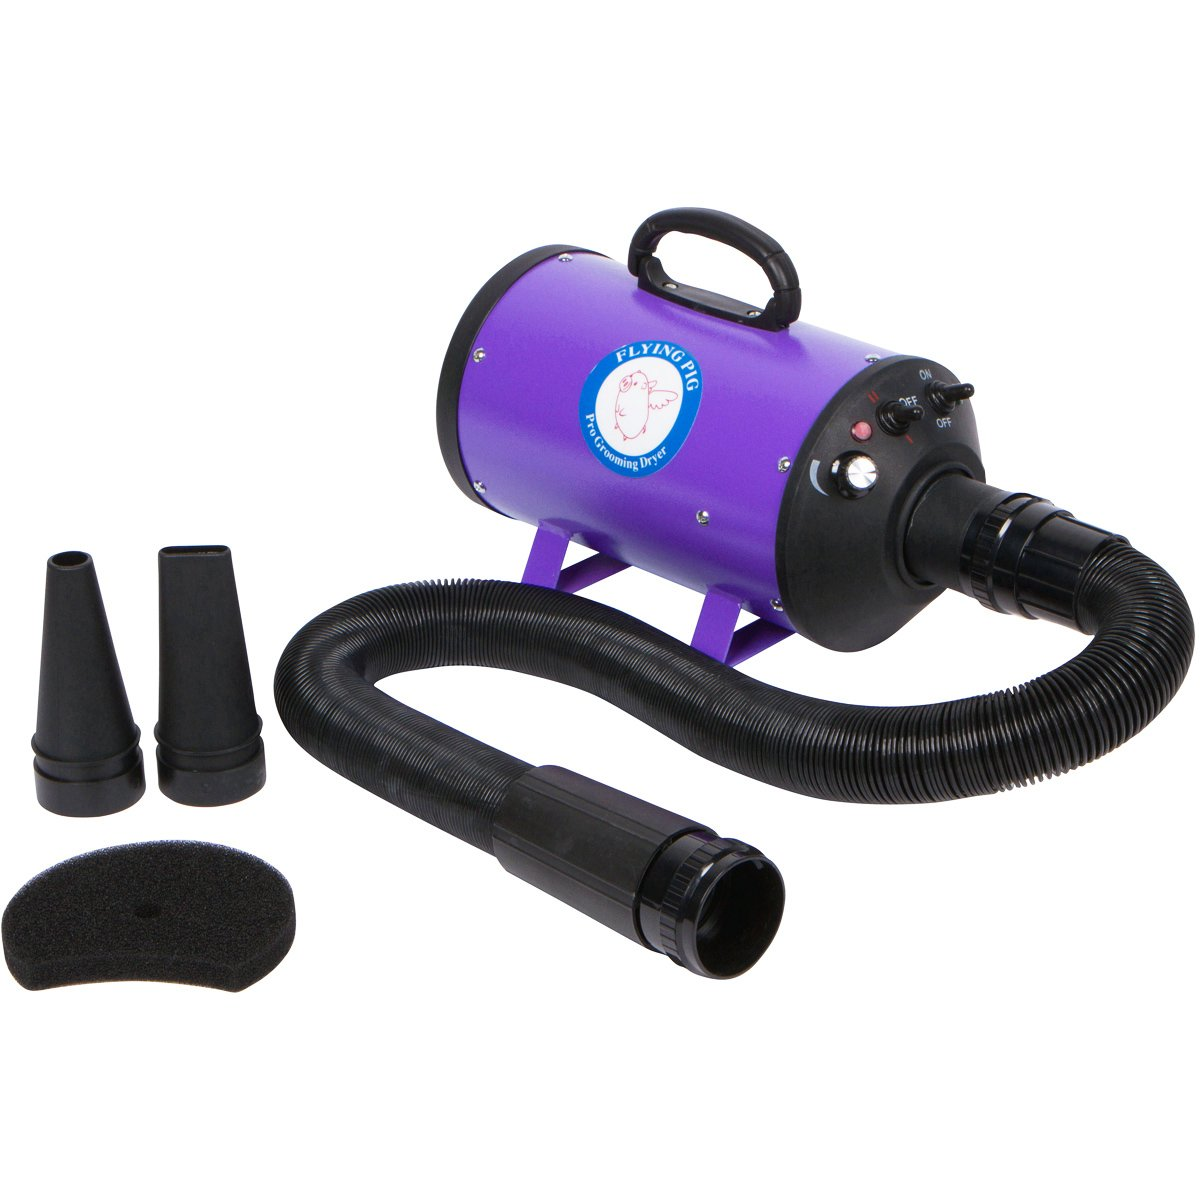 Flying Pig Grooming One Purple High Velocity 4.0 Hp Motor Dog Pet Grooming Force Dryer w/ Heater by Flying Pig Grooming